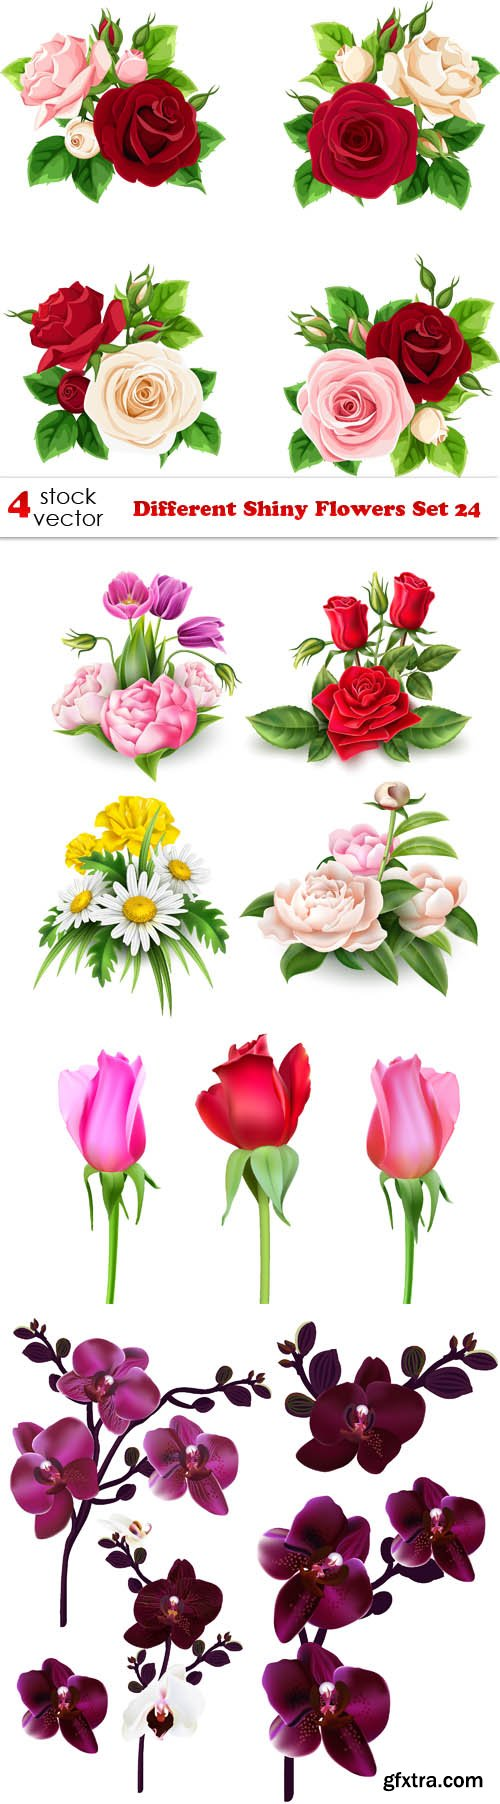 Vectors - Different Shiny Flowers Set 24